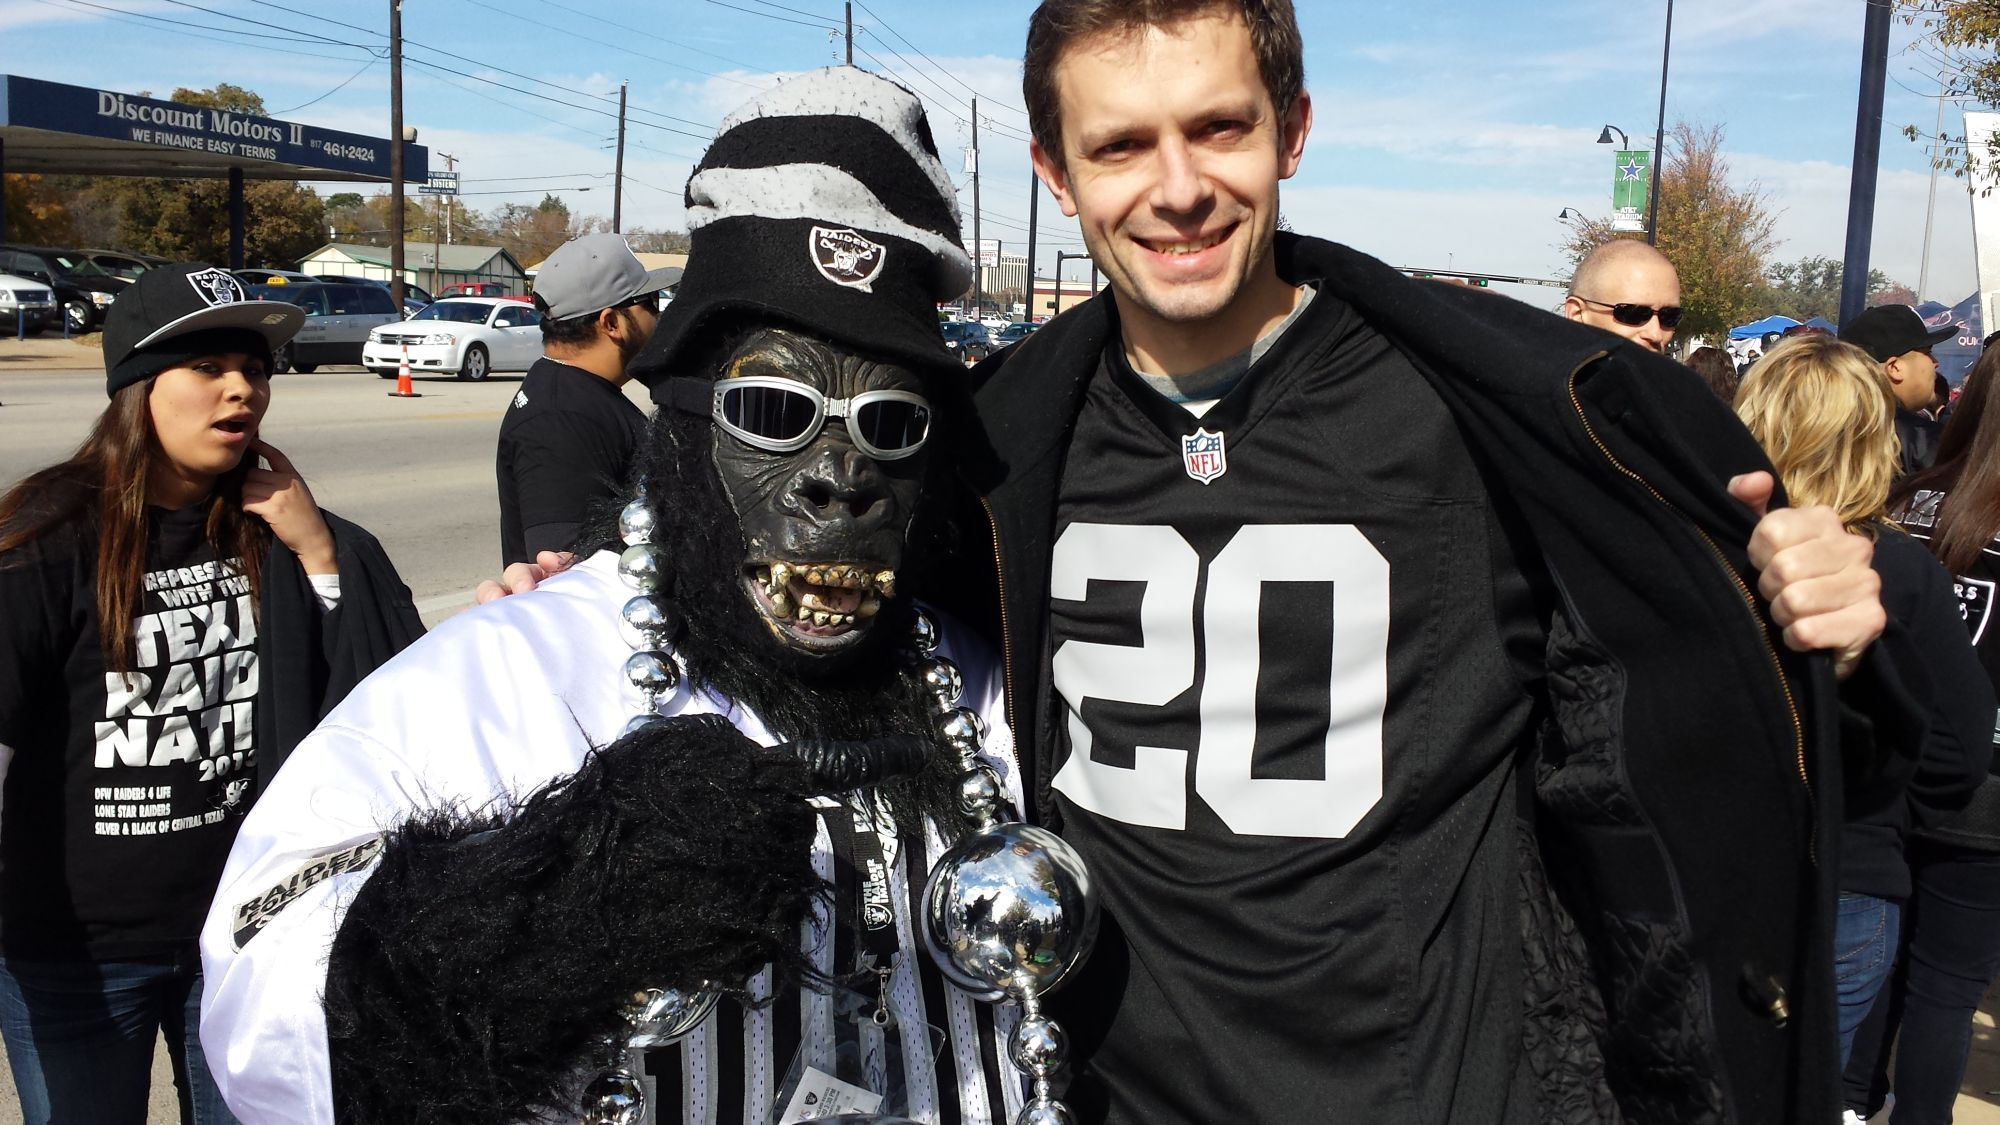 together with one of the raiders superfans